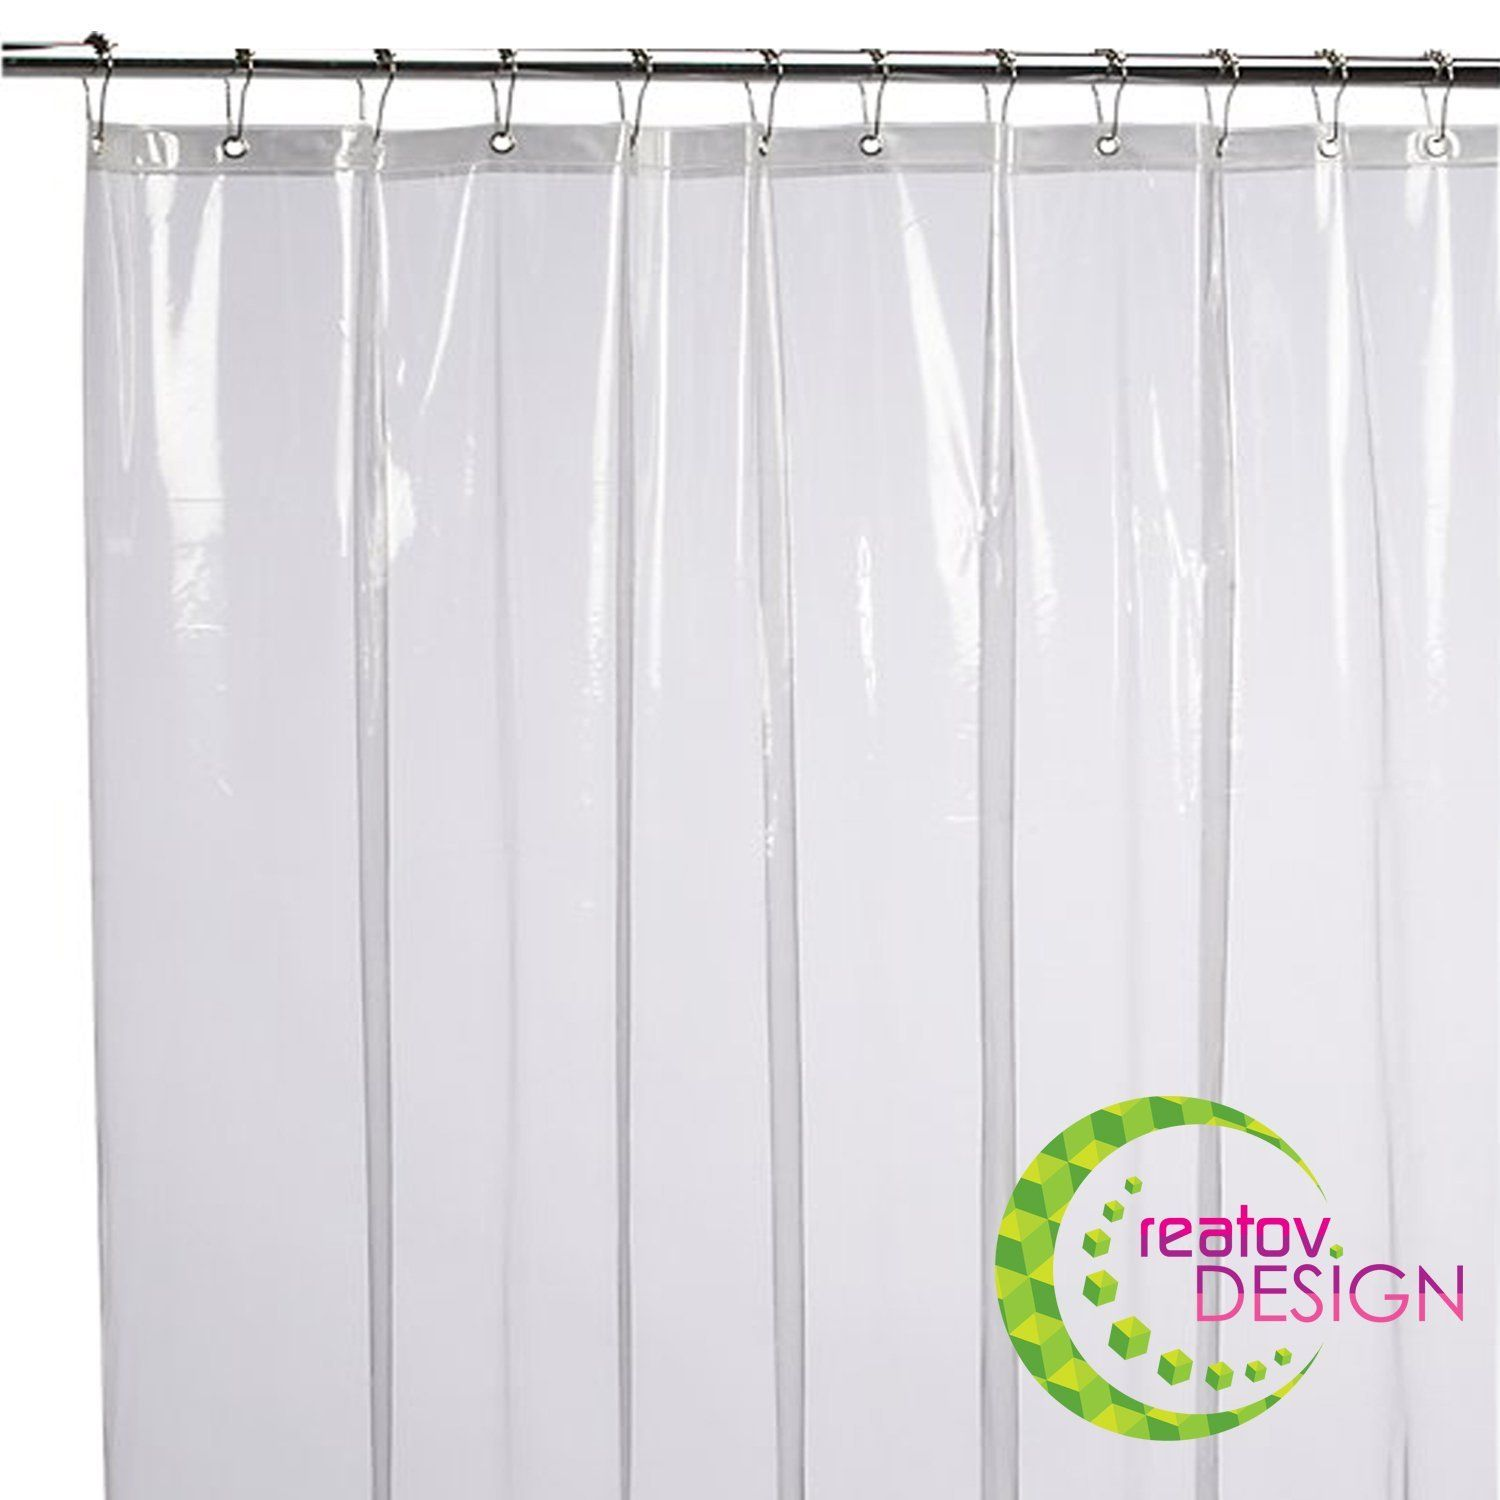 100 Waterproof Mold Resistant Shower Curtain This Is As All Curtains Should Be It To